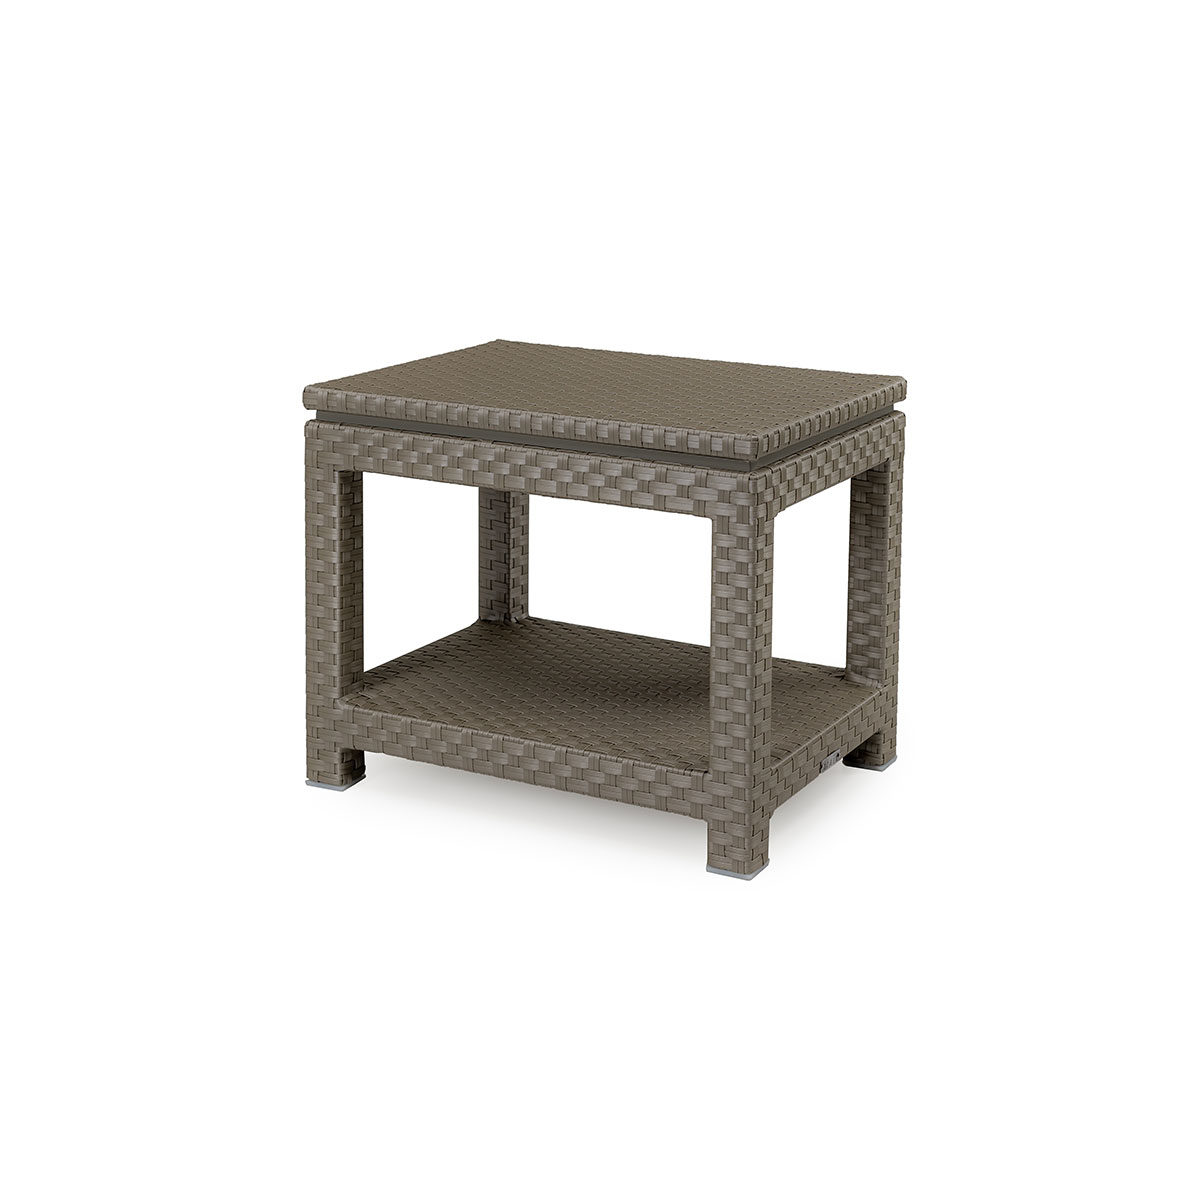 High side table Zoe Braid